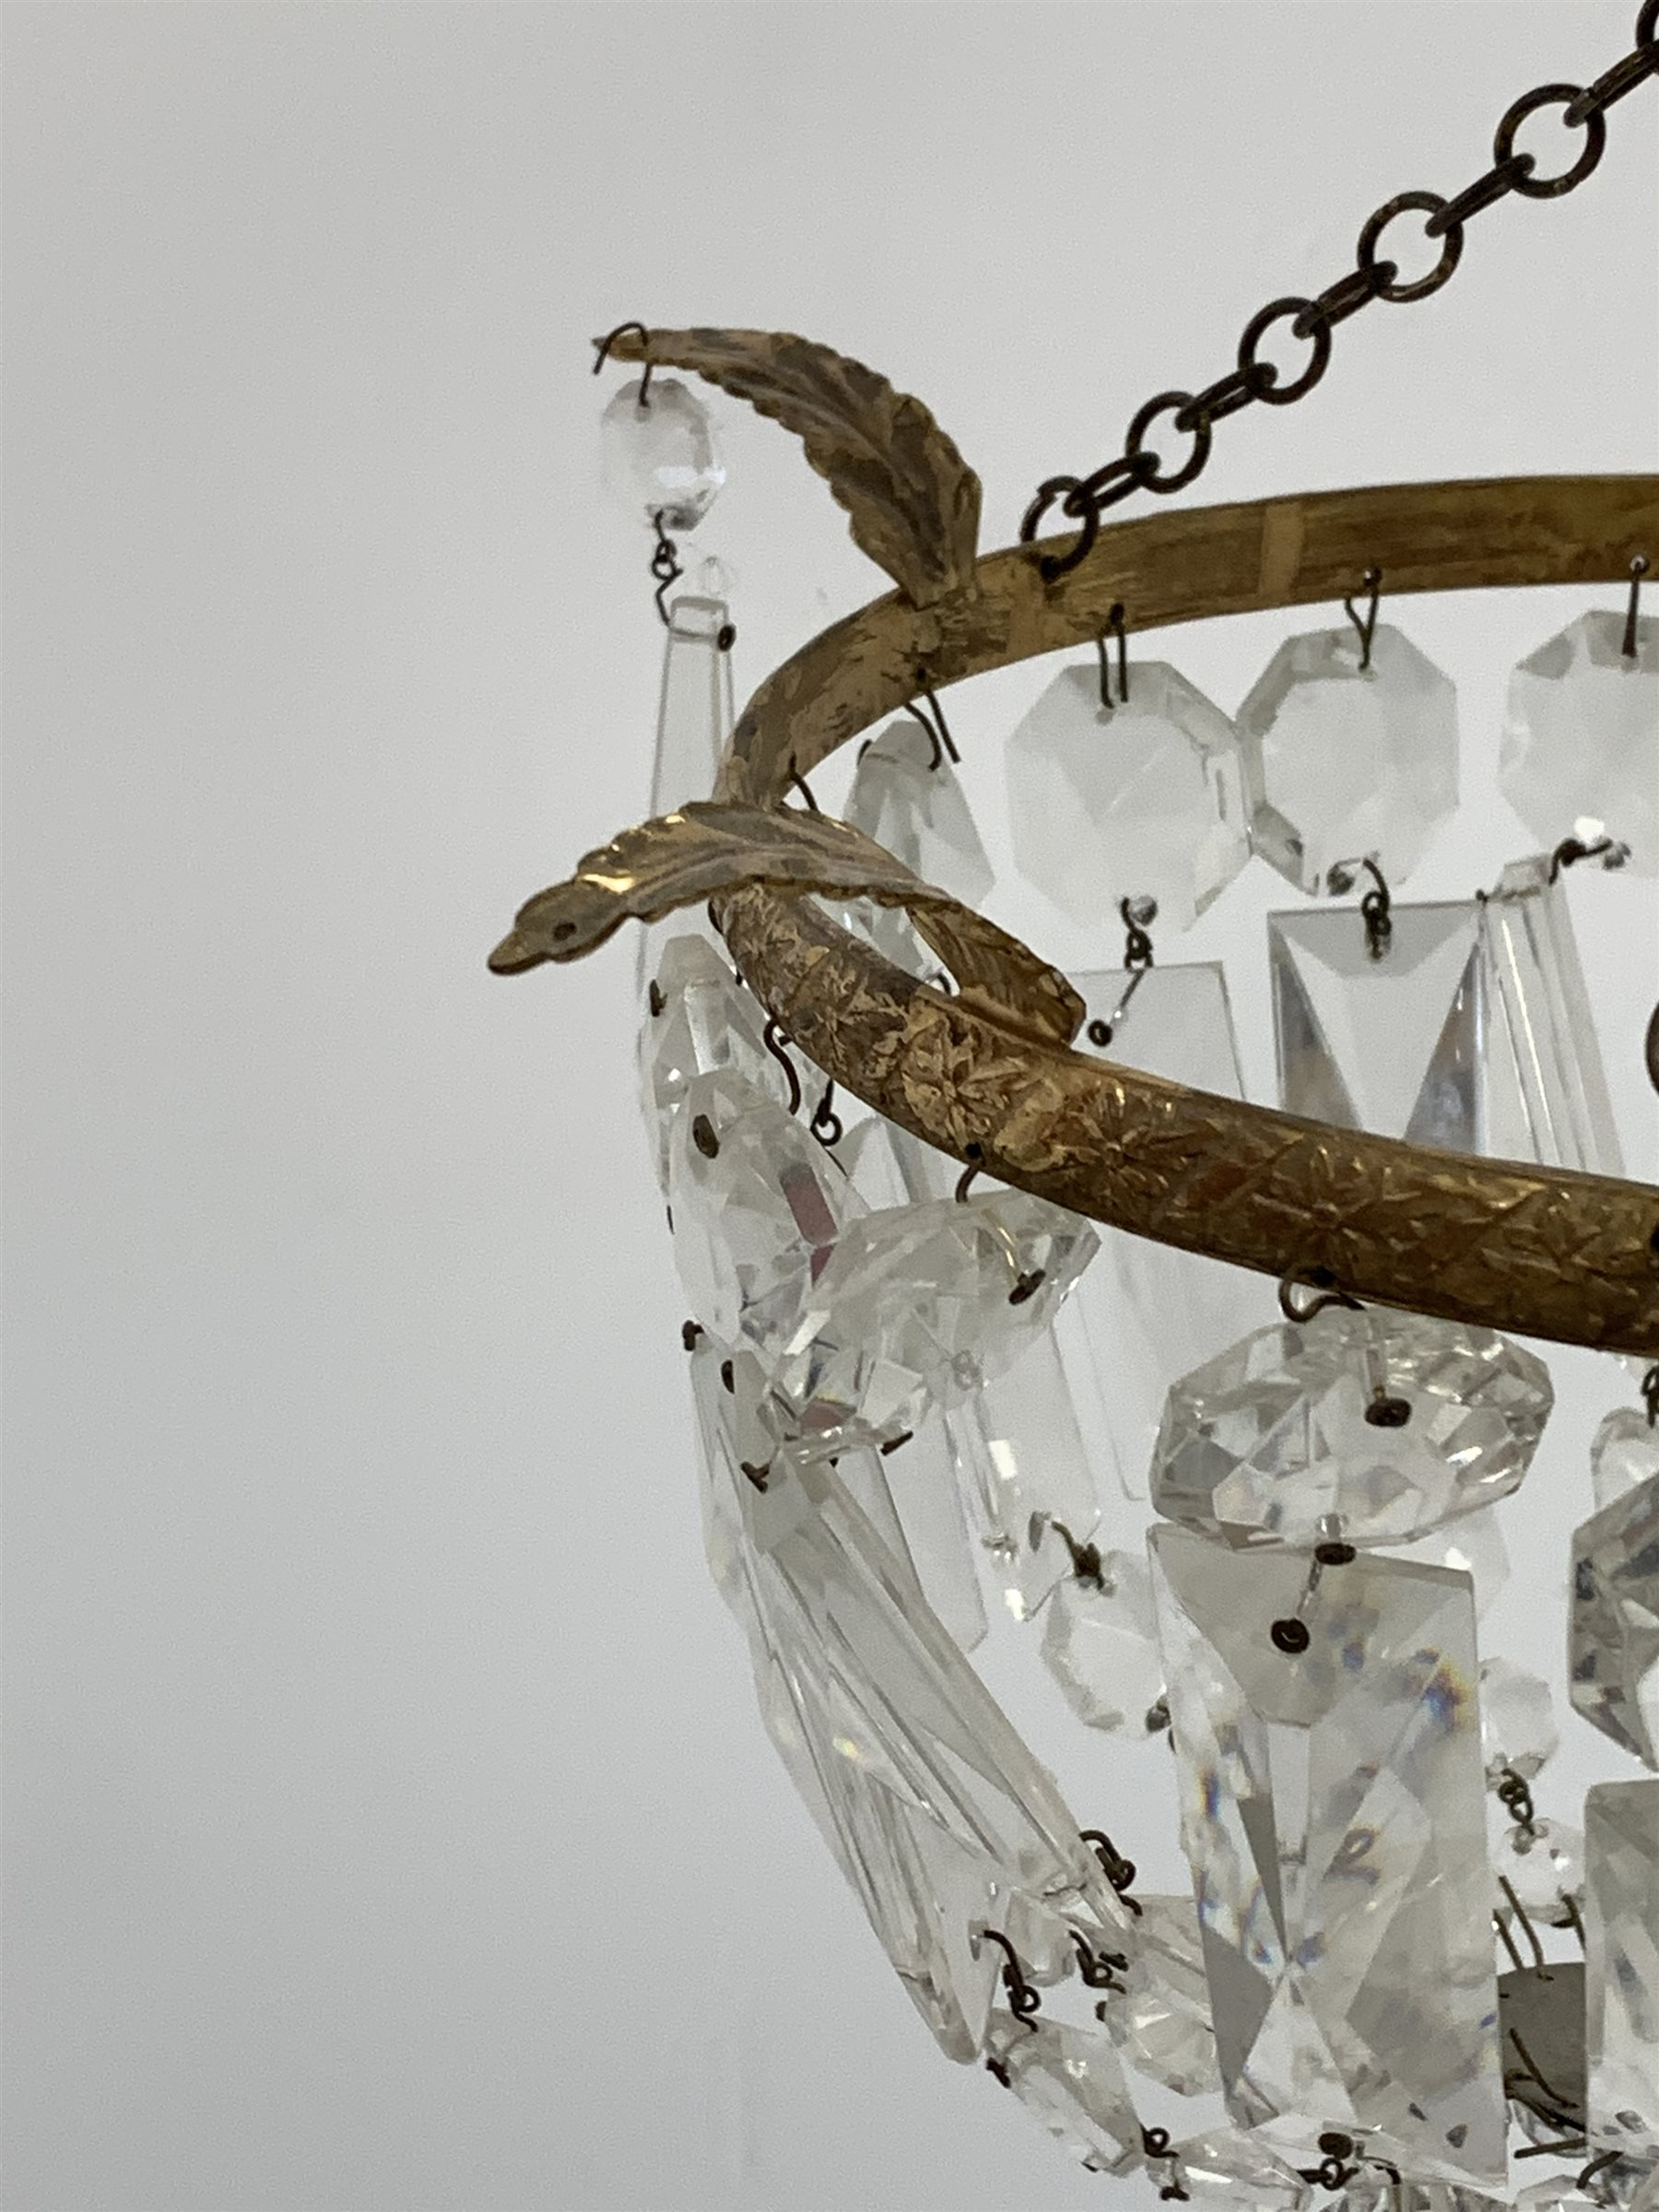 Gilt metal circlet light fitting hung with lustre drops, four various wall lights, reproduction Whit - Image 3 of 5